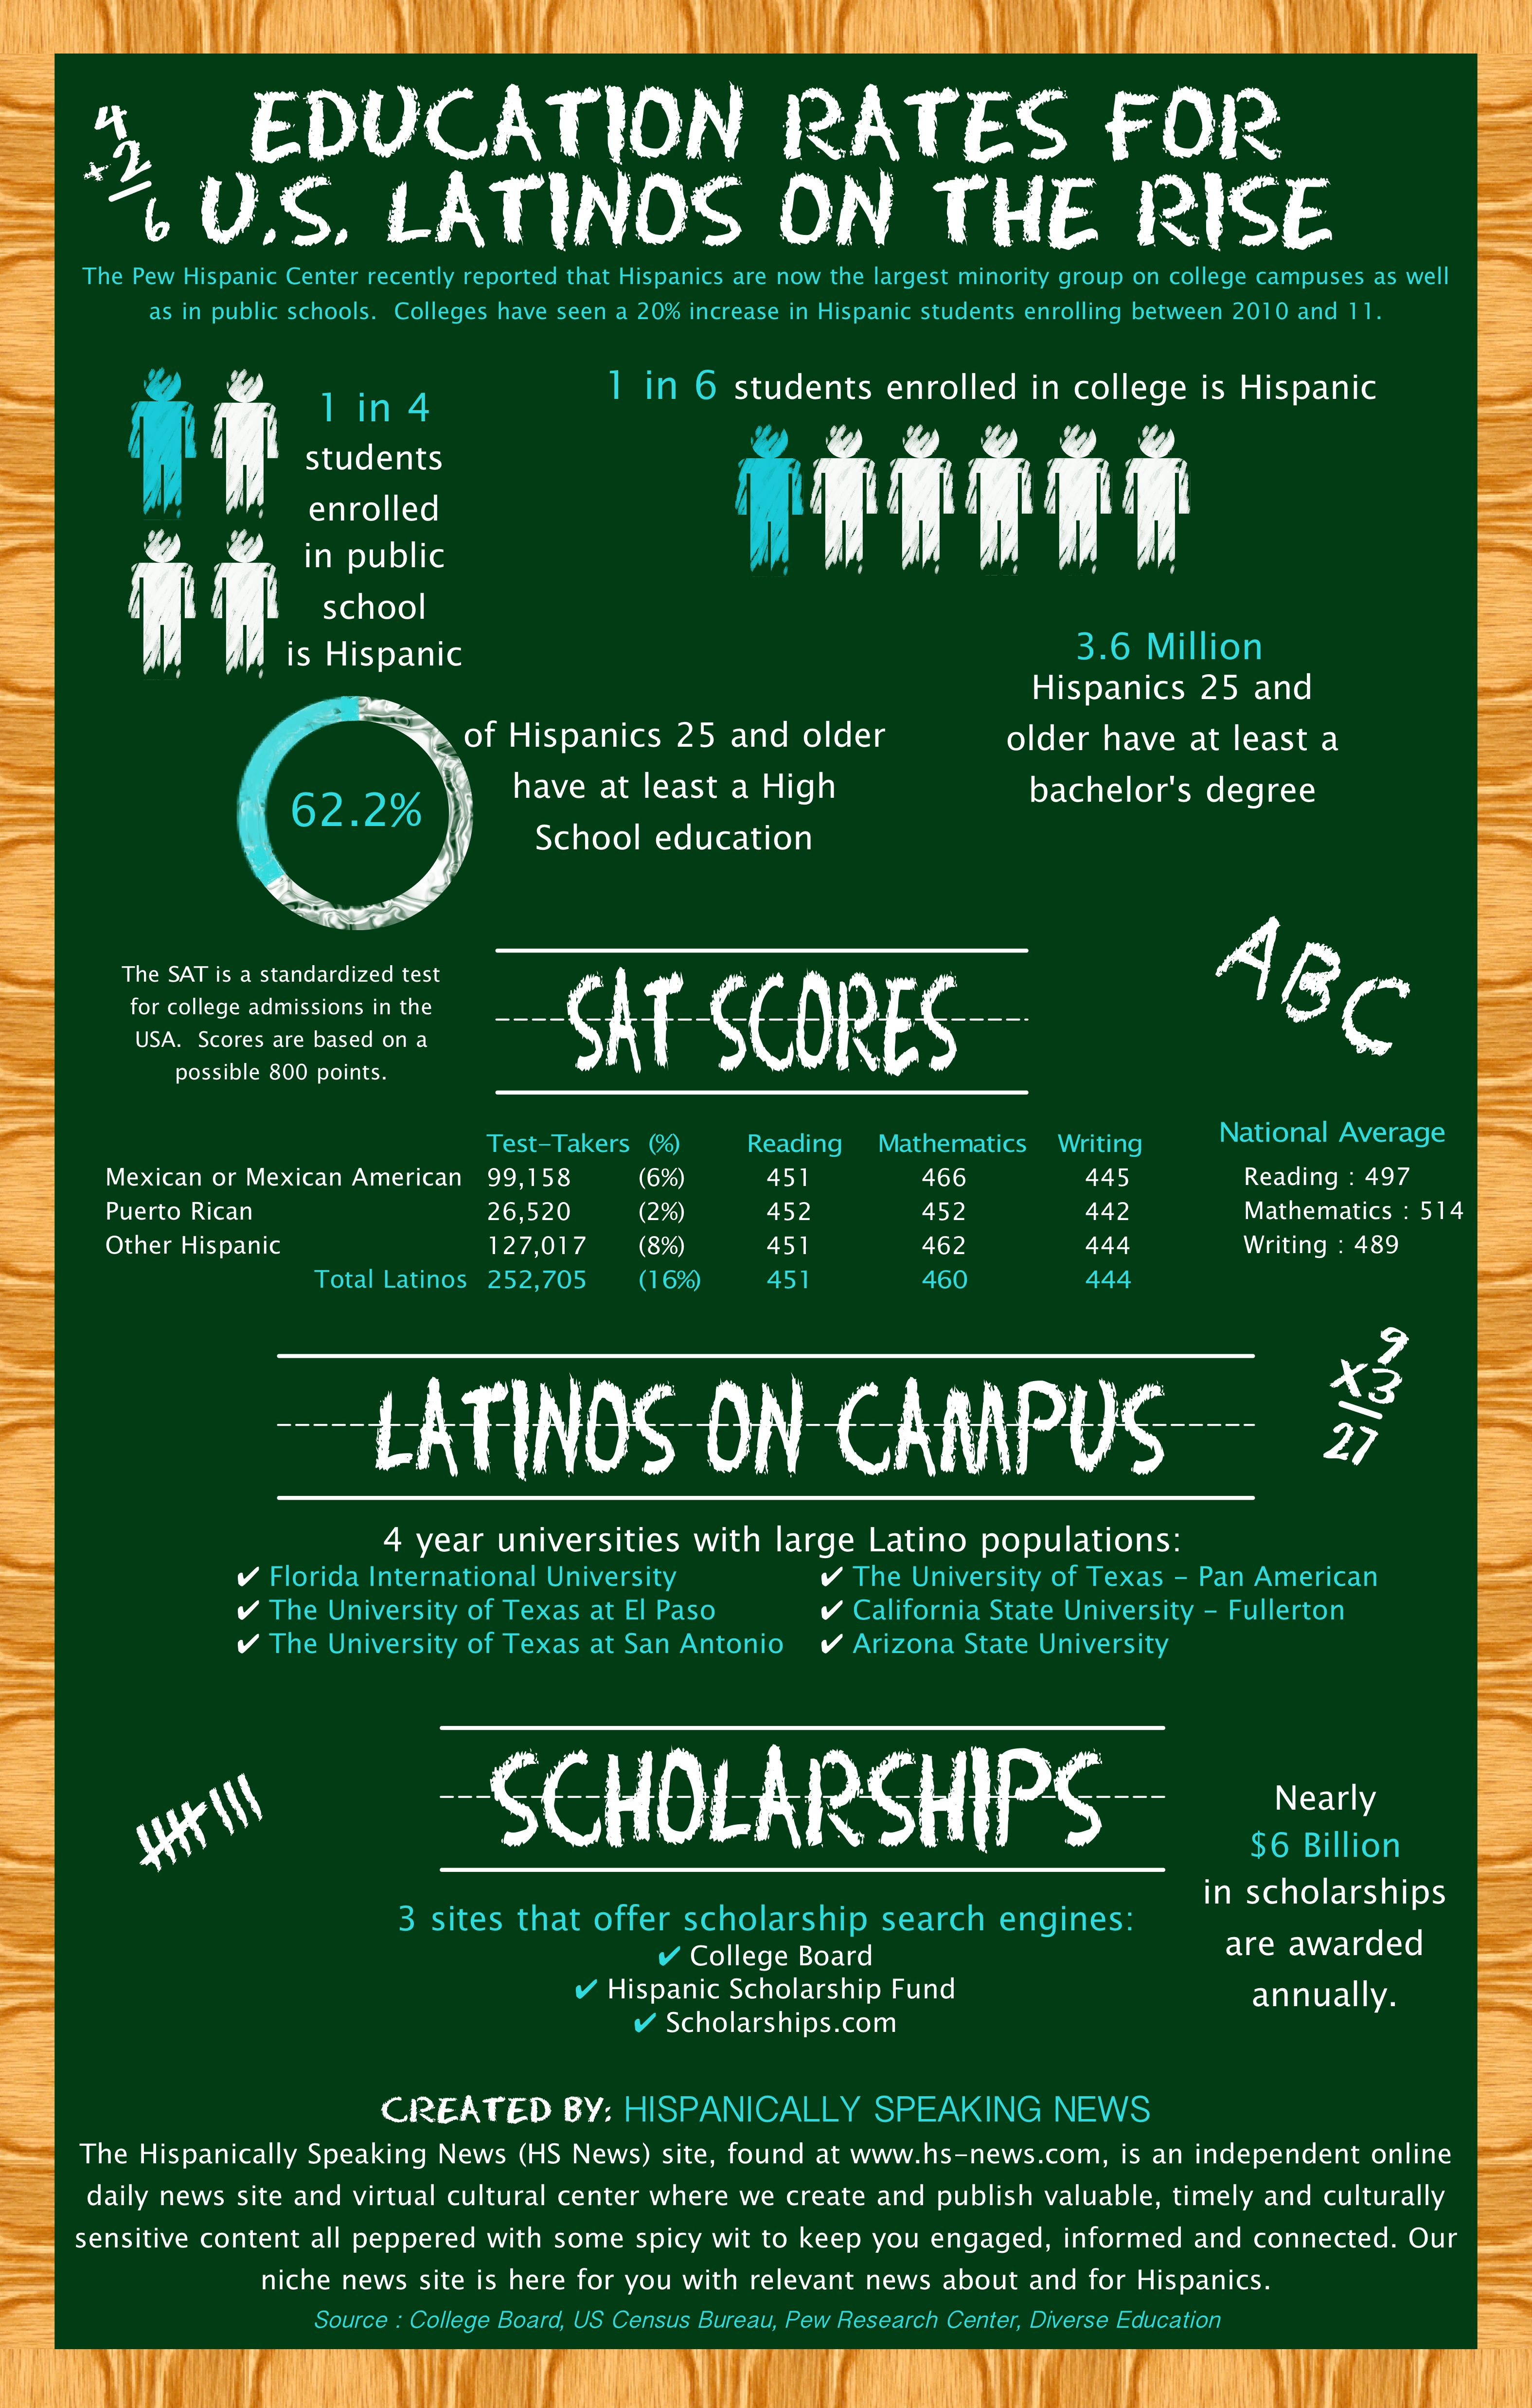 education-rates-for-us-latinos-on-the-rise_50368ebb67237